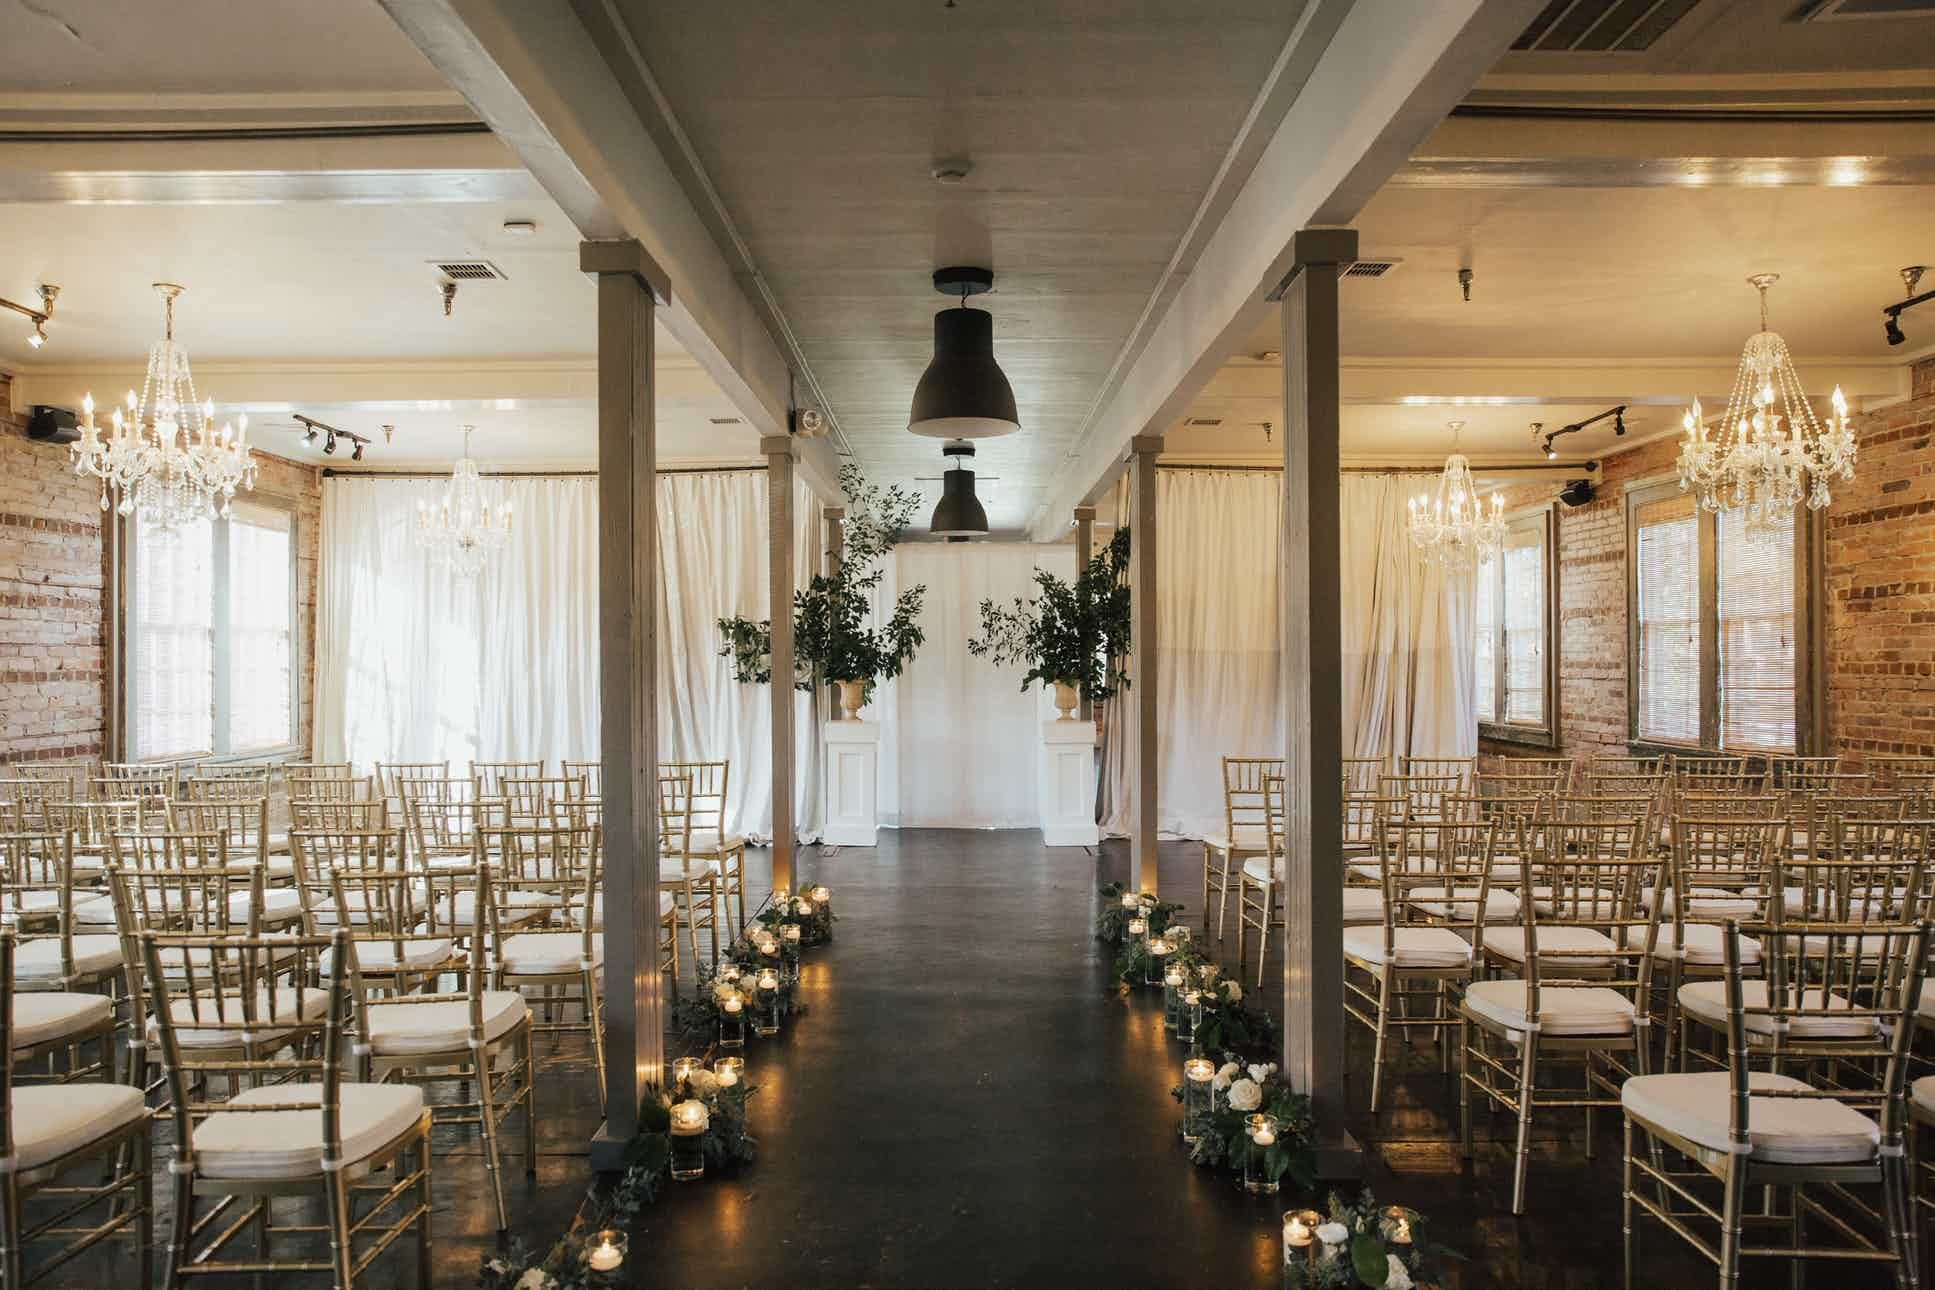 See Cohen S Retreat A Beautiful Historic Wedding Venue Find Prices Detailed Info And Photos For Cheap Wedding Venues Wedding Venues Historic Wedding Venue